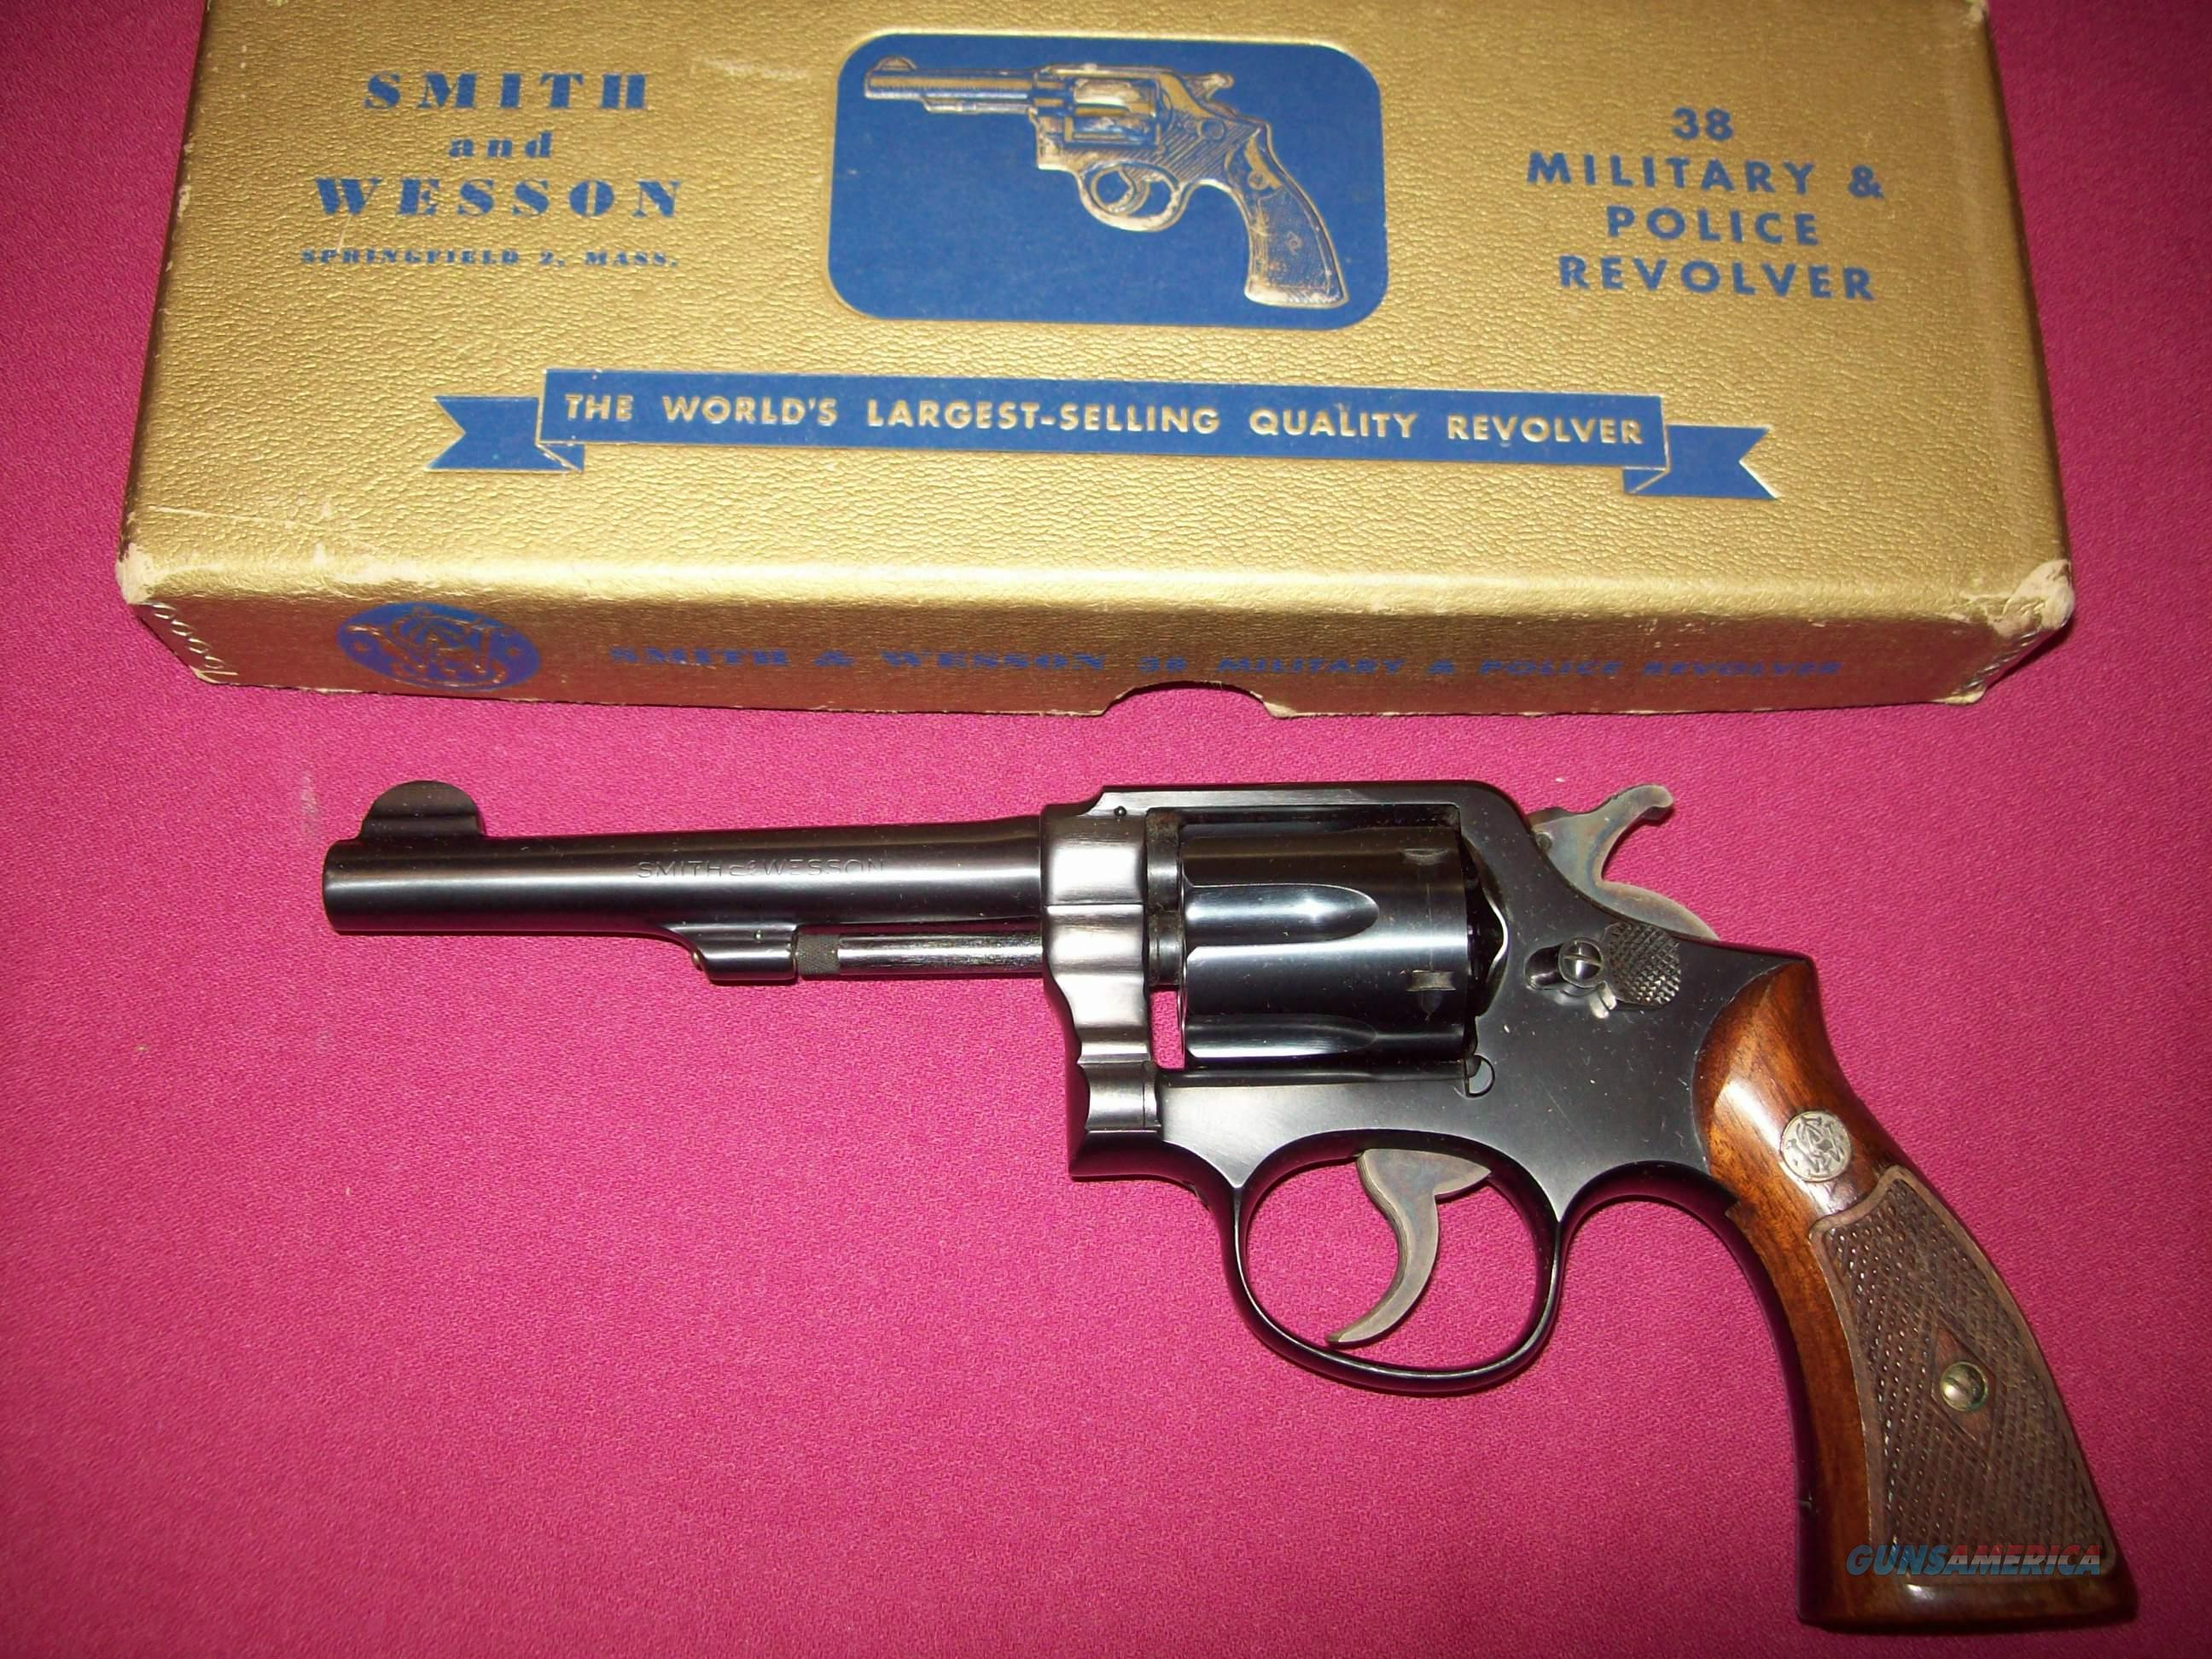 Smith & Wesson Military and Police 5 inch in Gold Box  Guns > Pistols > Smith & Wesson Revolvers > Full Frame Revolver